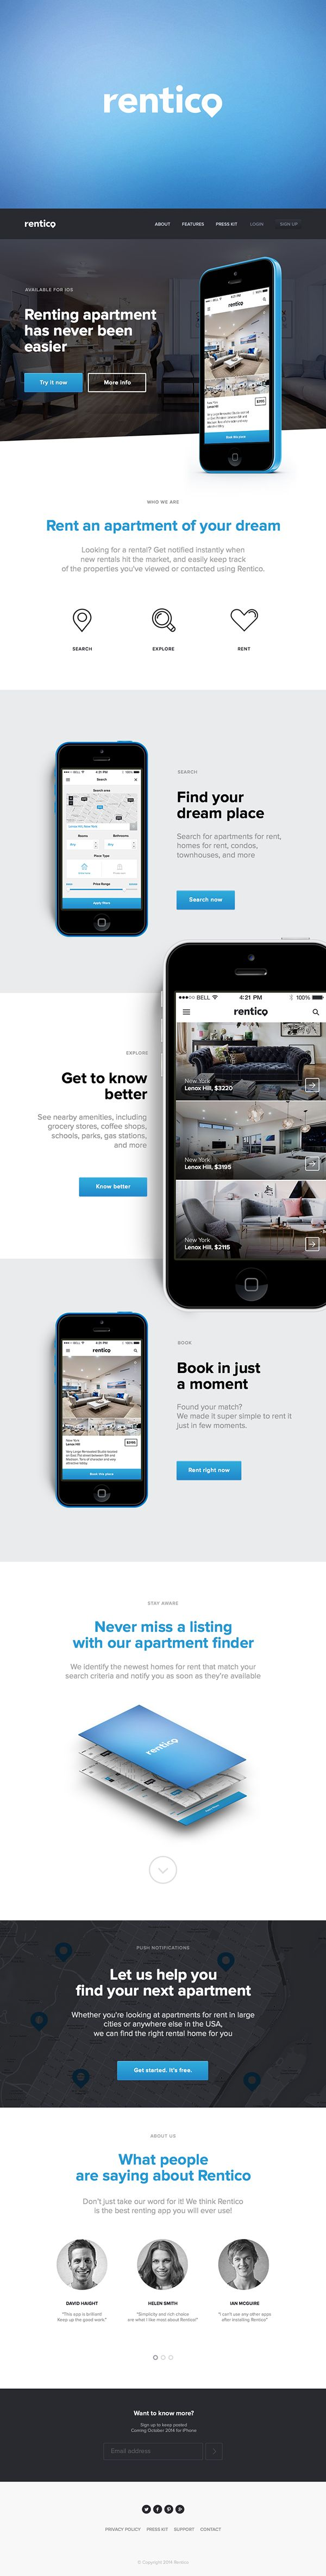 Rentico – mobile application for renting an apartment by Serge Vasil Published by Serge Vasil